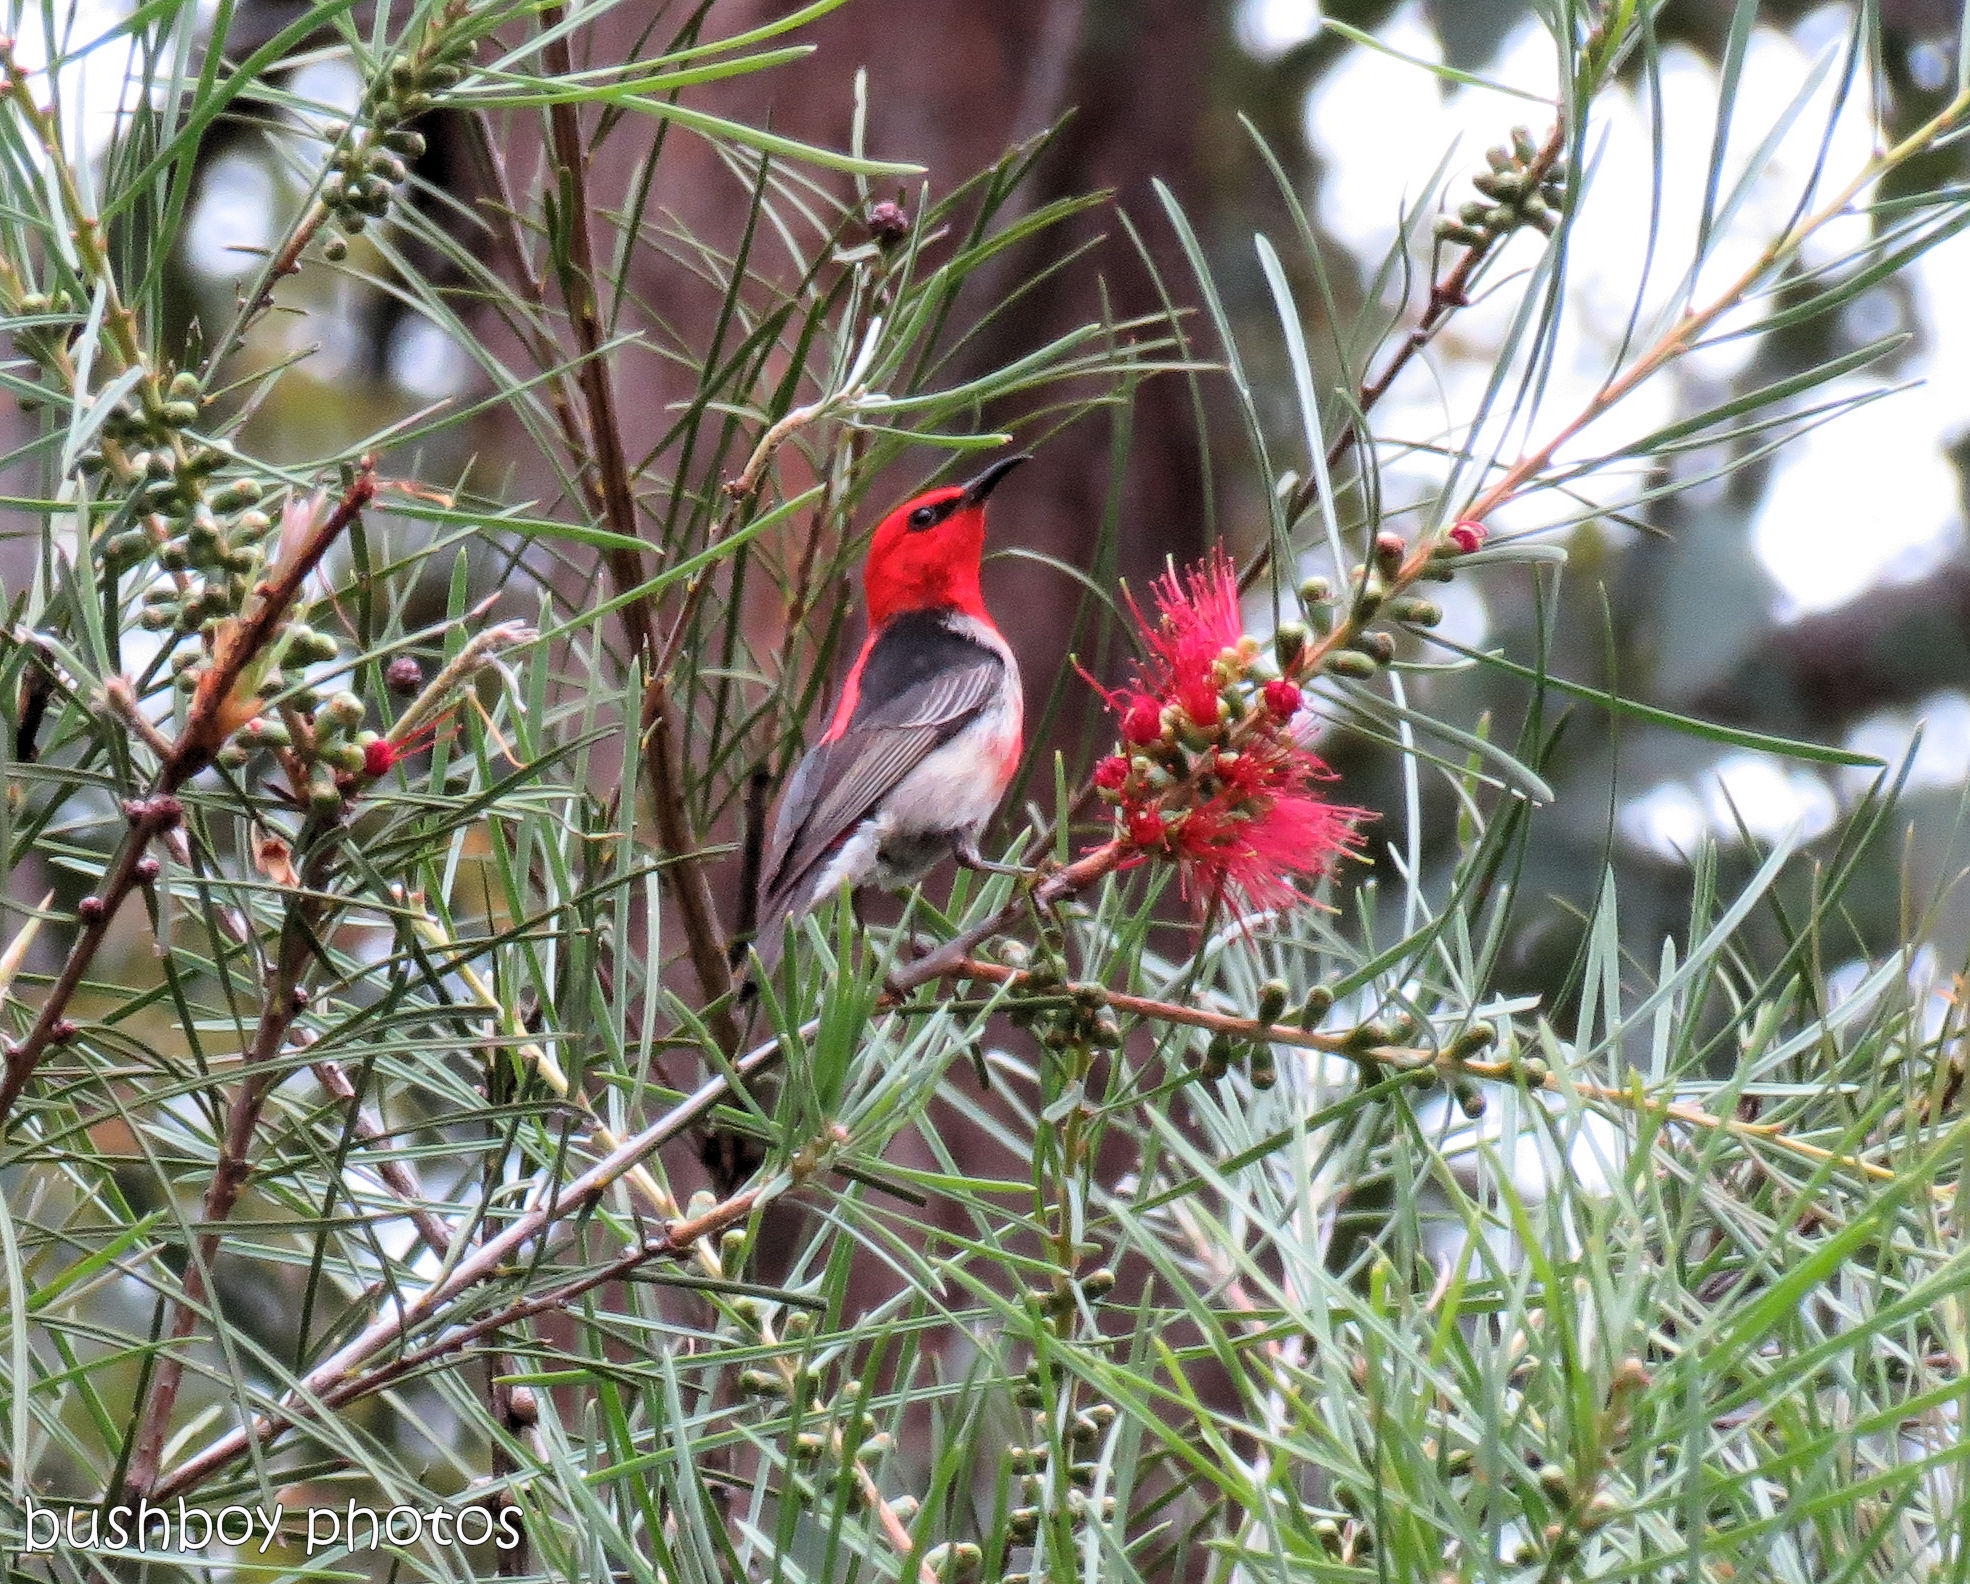 170823_blog challenge_small subjects_scarlet honeyeater 01